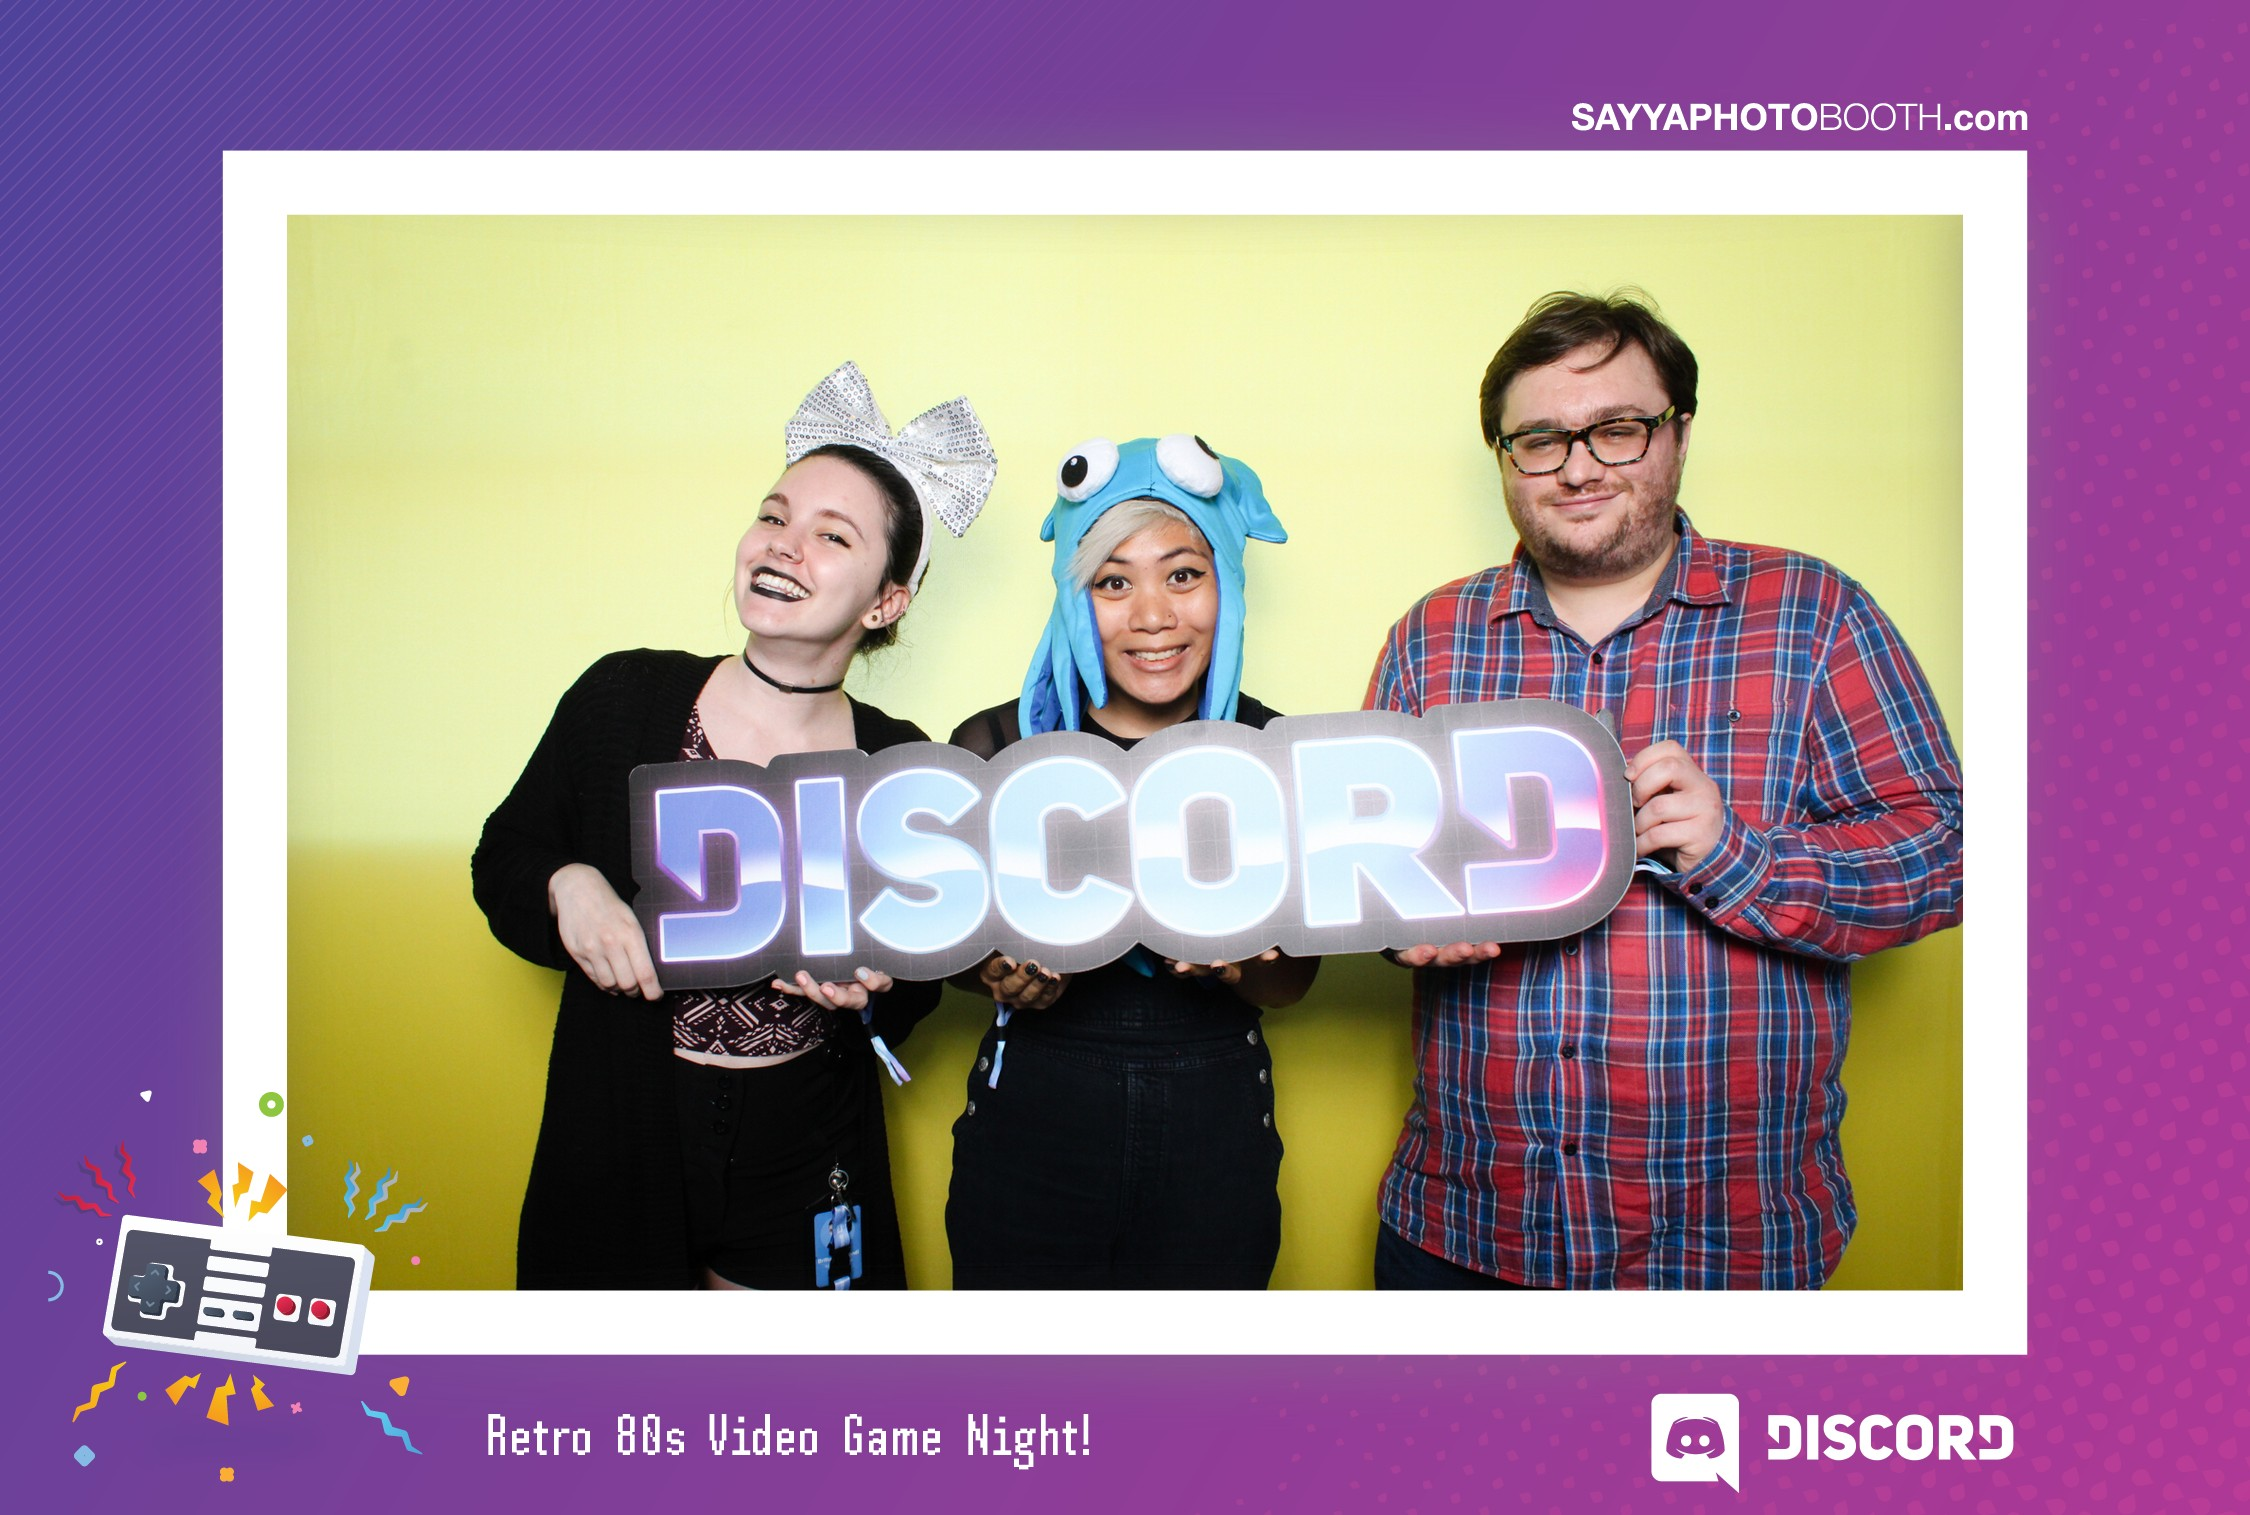 Discord App - 80s Video Game Night